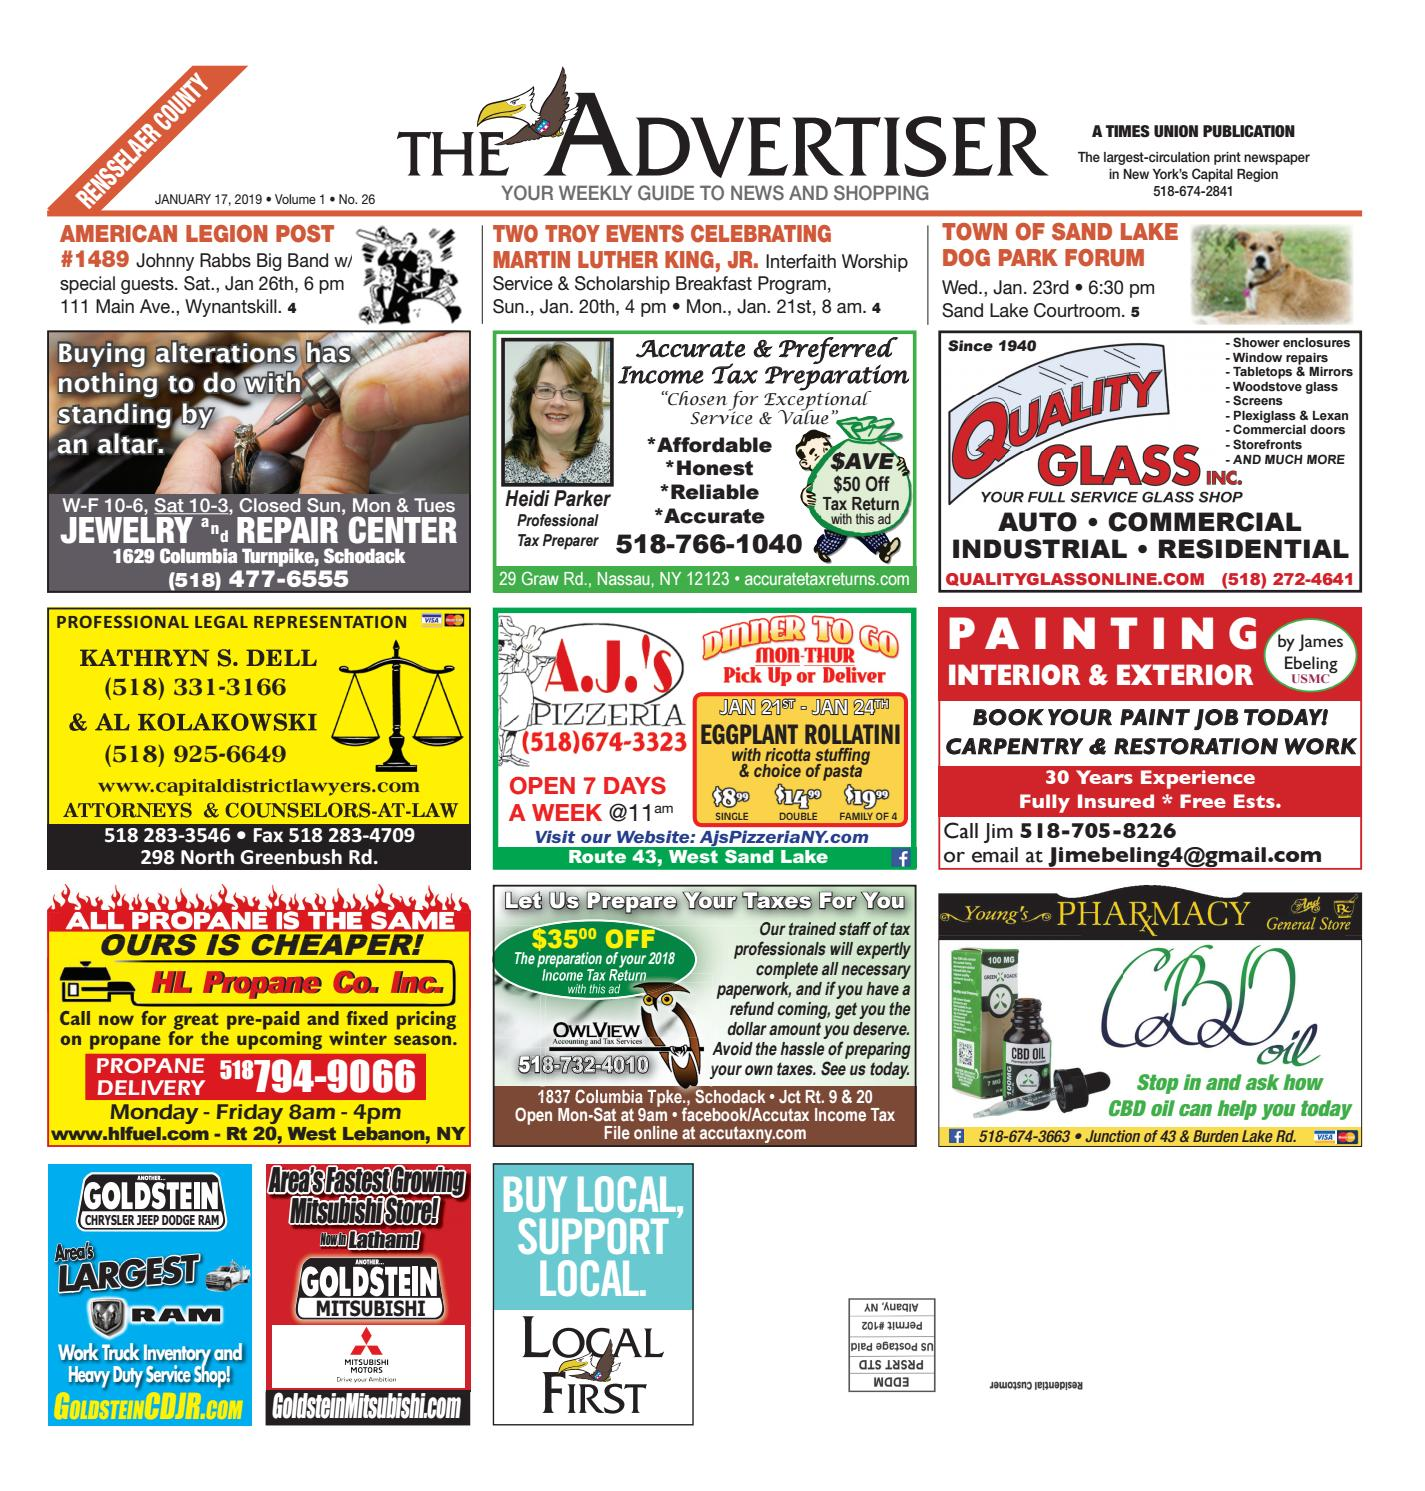 Local First The Advertiser 011719 by Capital Region Weekly Newspapers -  issuu